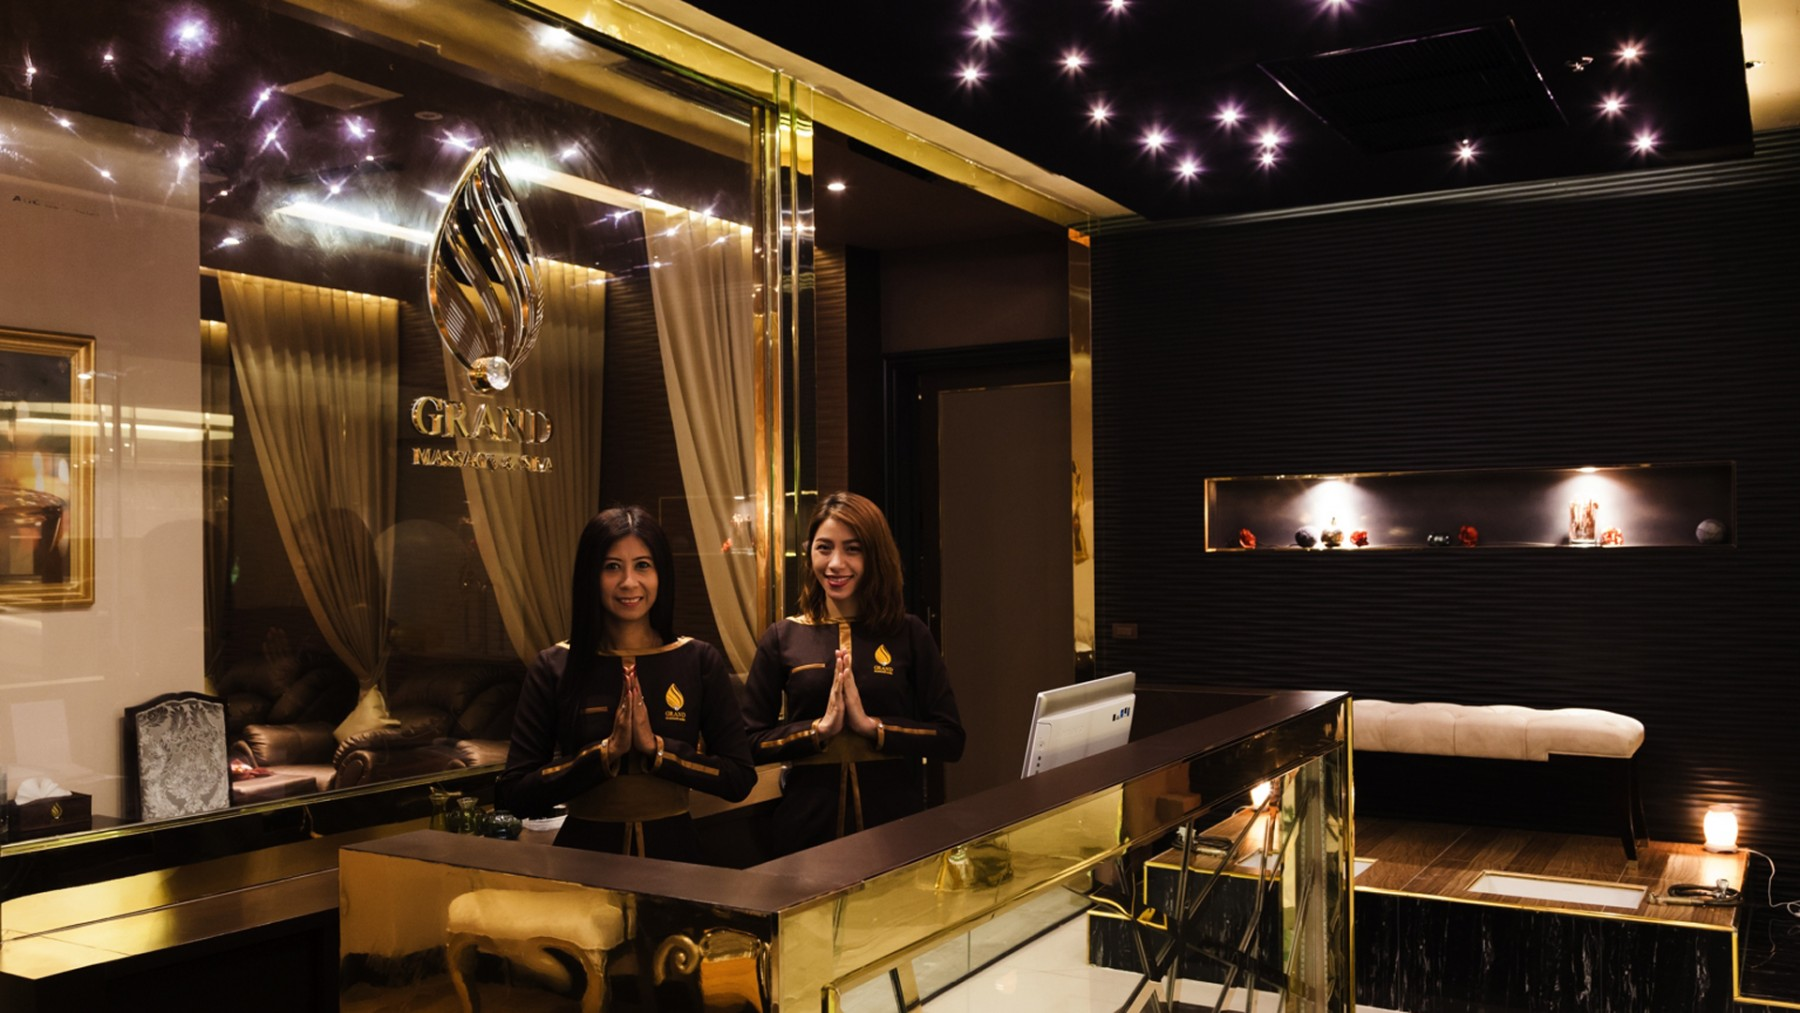 Salon De Massage Nimes Grand Massage And Spa Grand Sukhumvit Hotel Bangkok